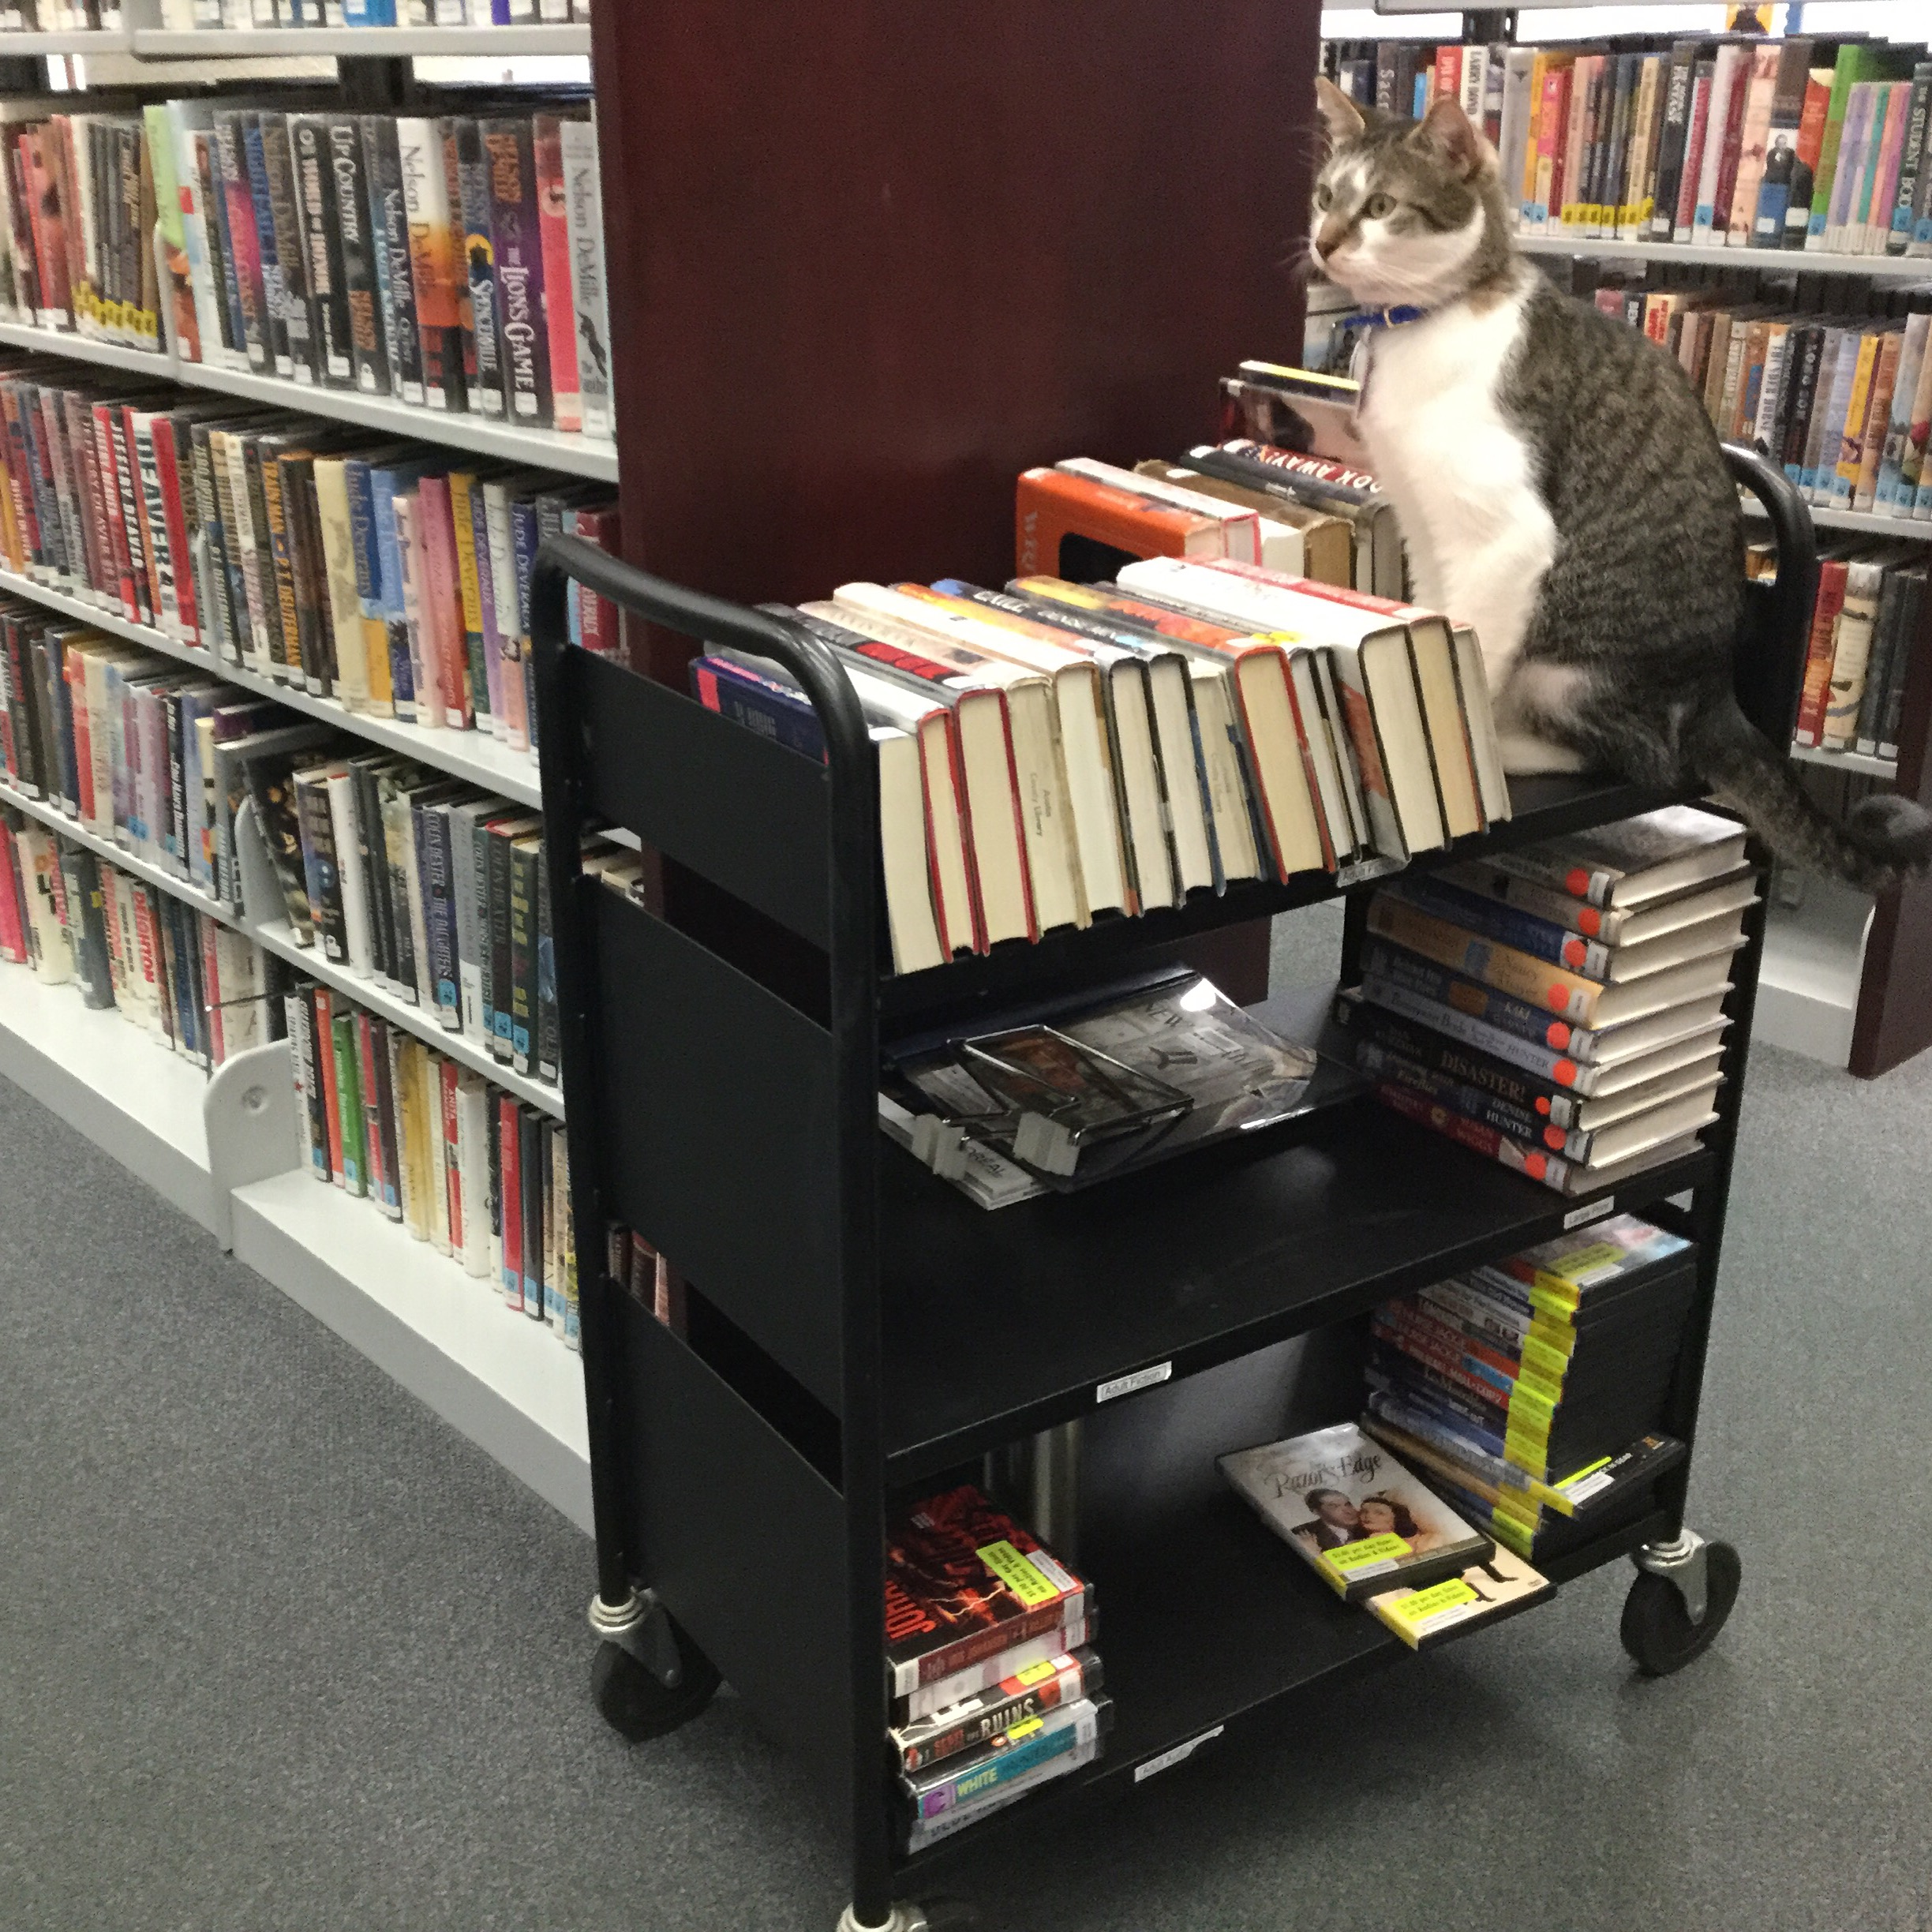 My Most Challenging Library Patron